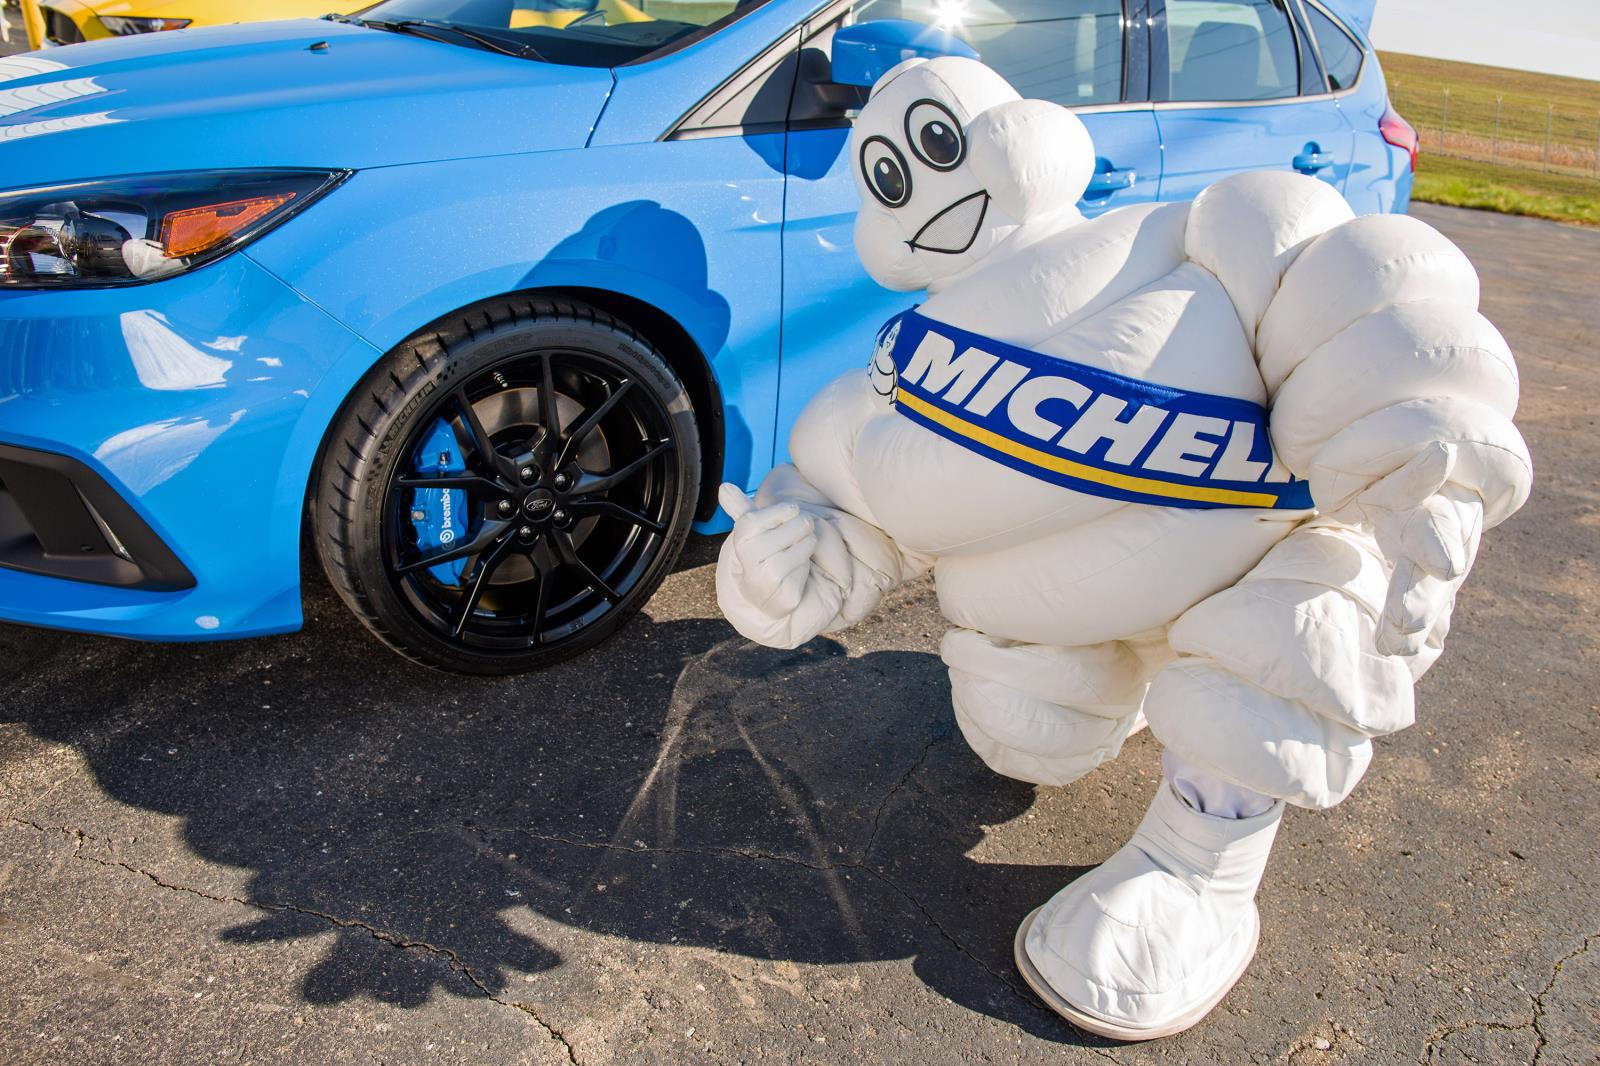 MichelinMan_39A6457_MR.jpg